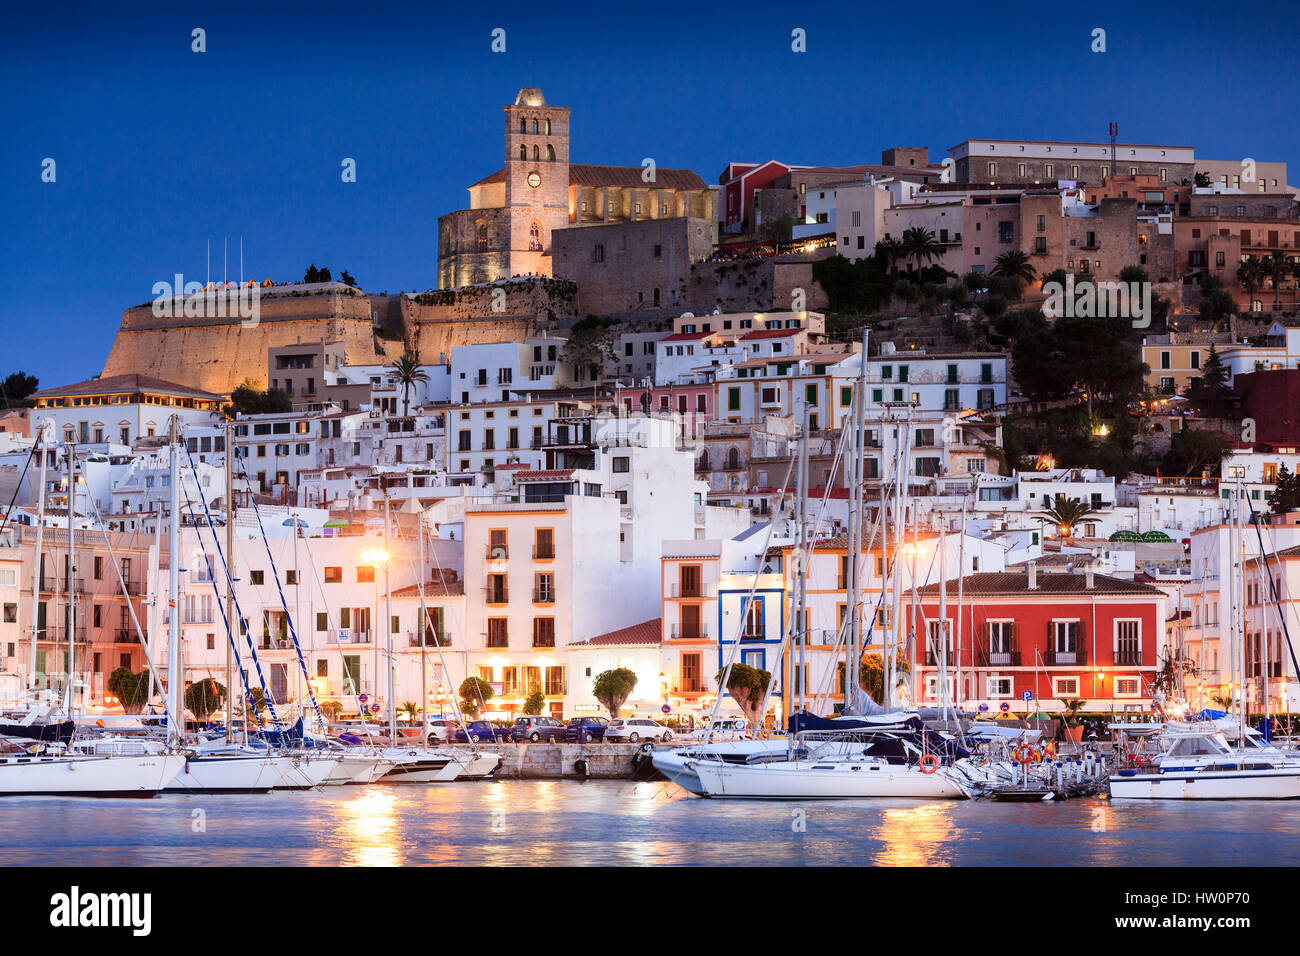 ibiza stadt hafen und altstadt ibiza balearen spanien stockfoto bild 135856420 alamy. Black Bedroom Furniture Sets. Home Design Ideas